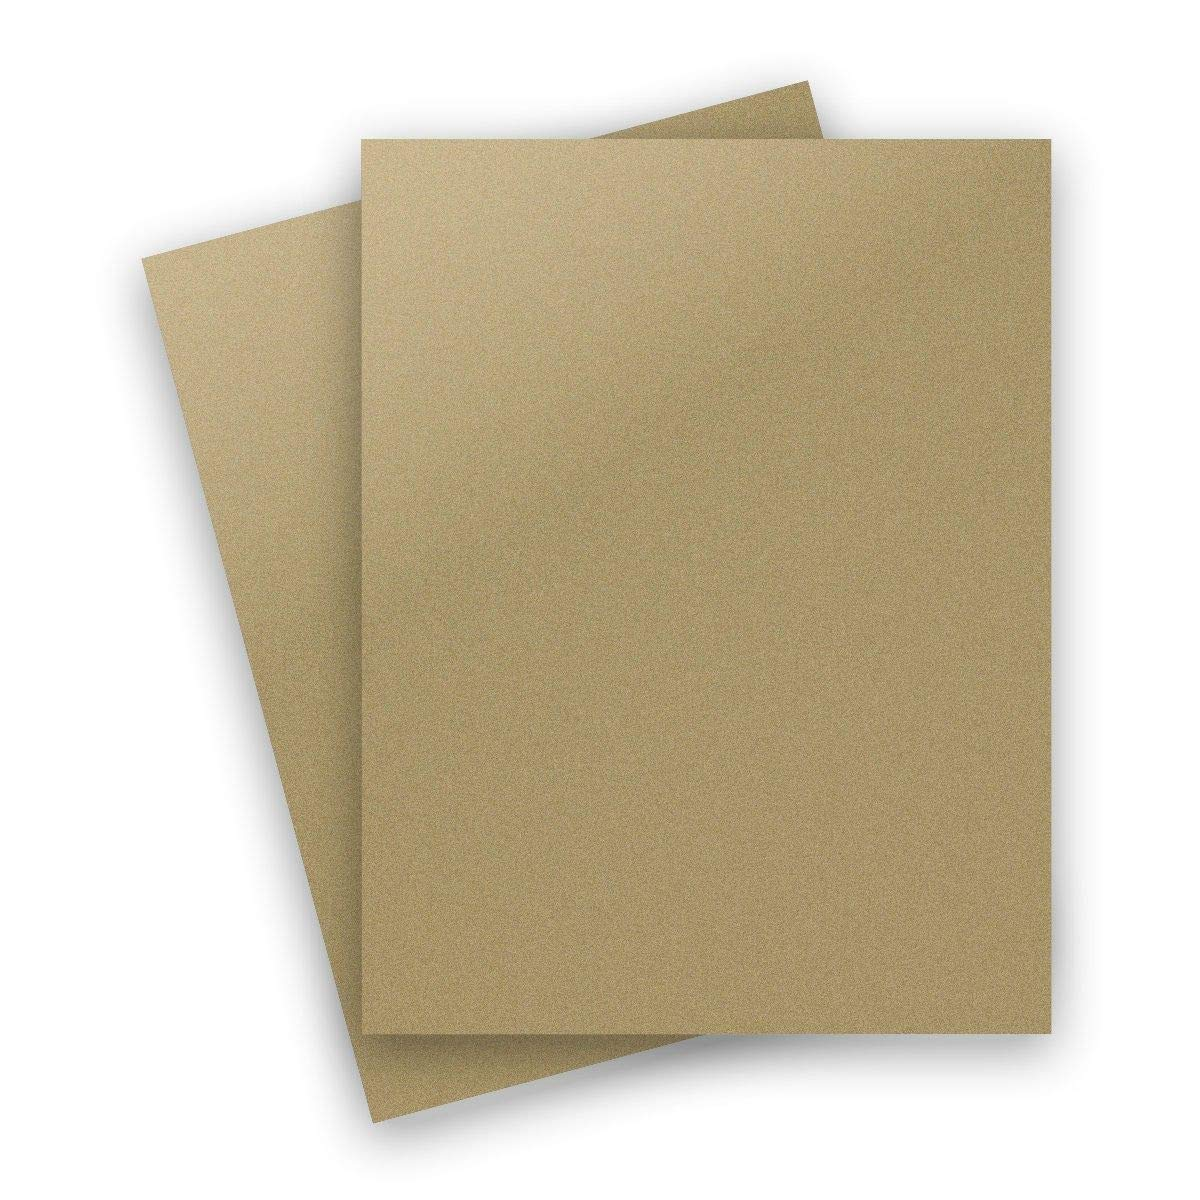 Metallic Antique Gold Leaf 8-1/2-x-11 Lightweight Multi-use Paper 50-pk - PaperPapers 118 GSM (32/80lb Text) Letter size Everyday Paper - Professionals, Designers, Crafters and DIY Projects paper-papers